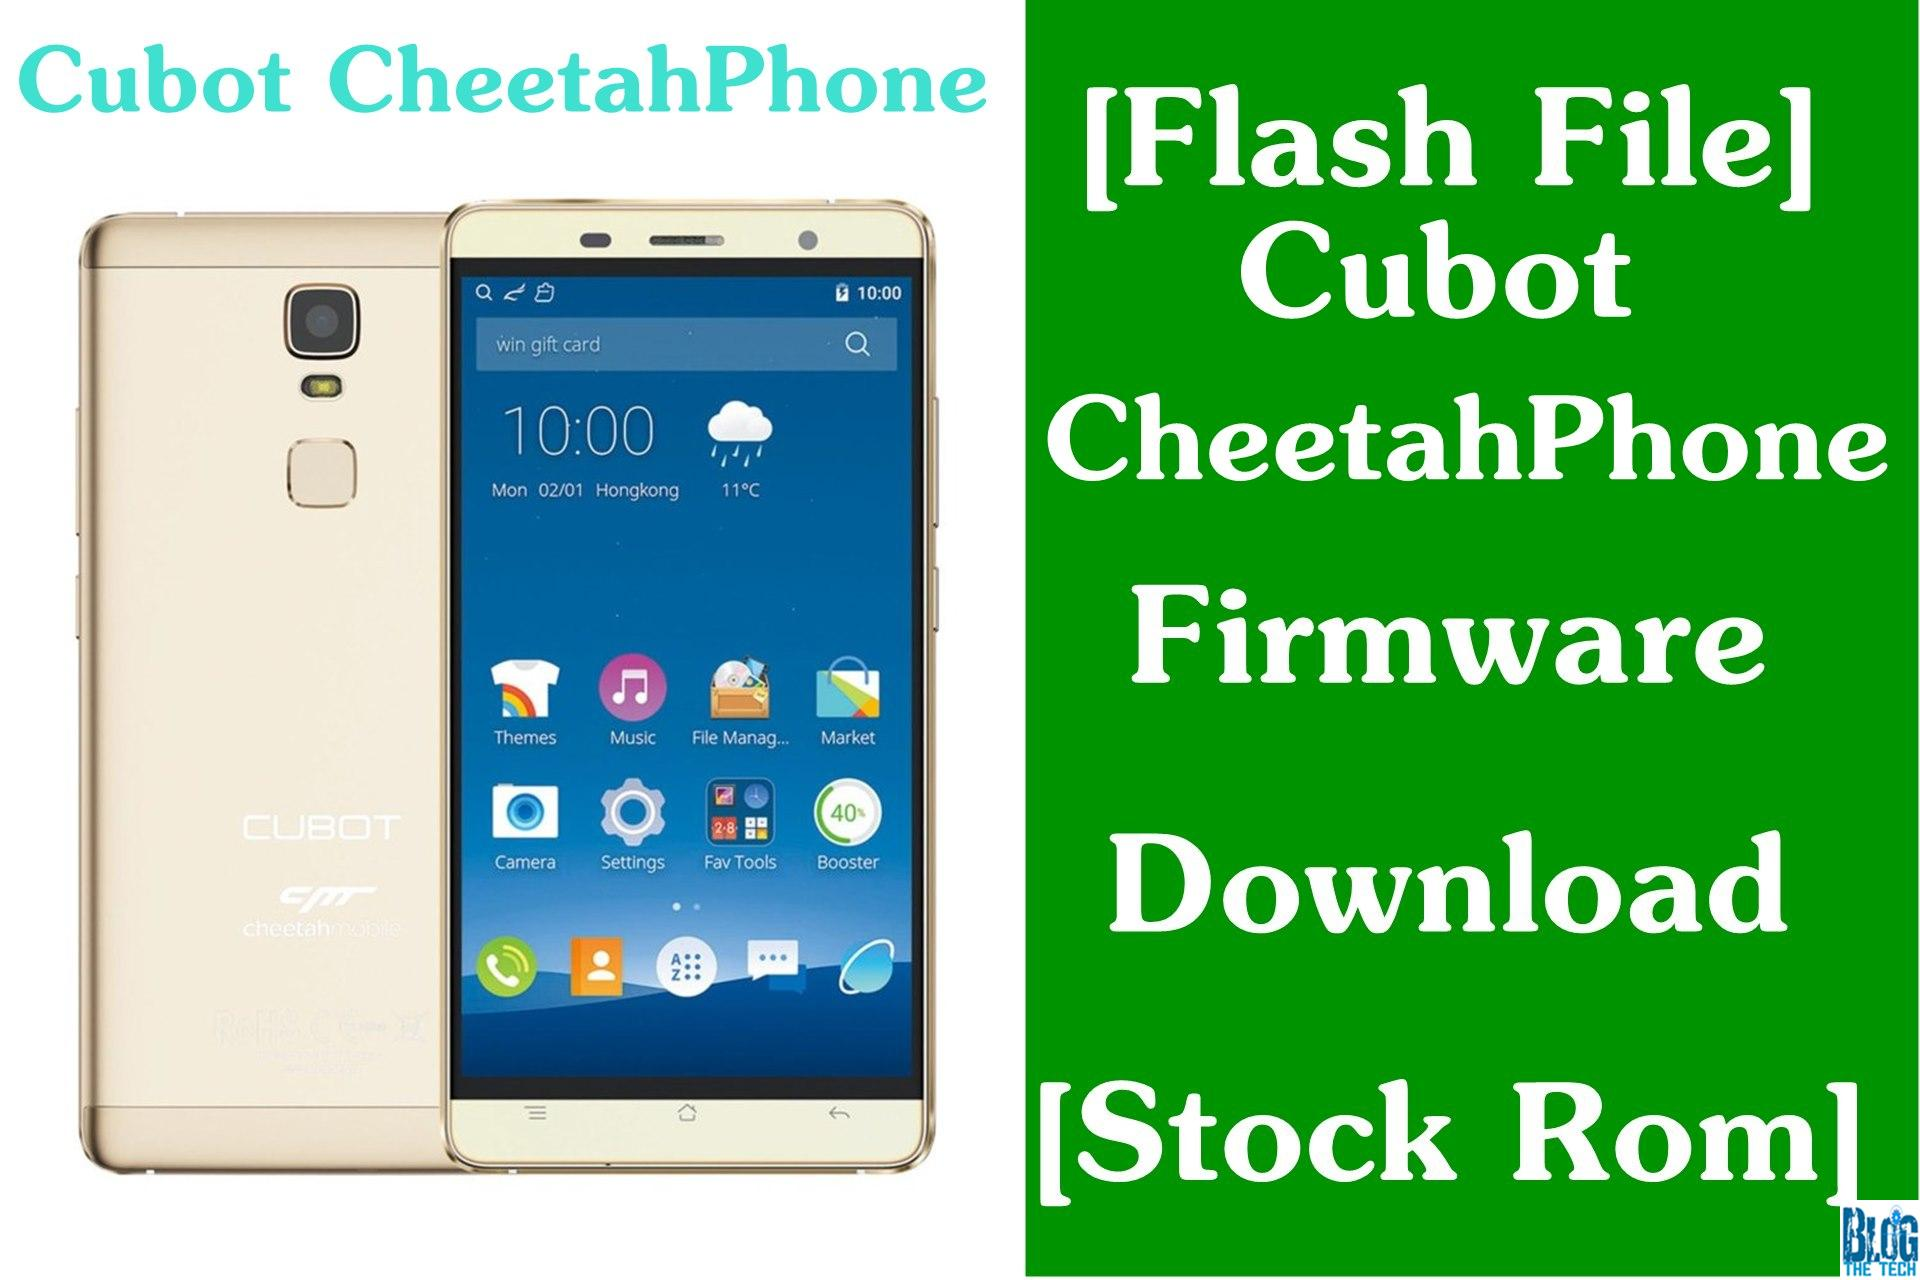 telecharger firmware tablette accent eagle vinny oleo flash file cubot cheetahphone stock rom tablet outdoor recliner small ginger jar table lamps skinny side with drawer game